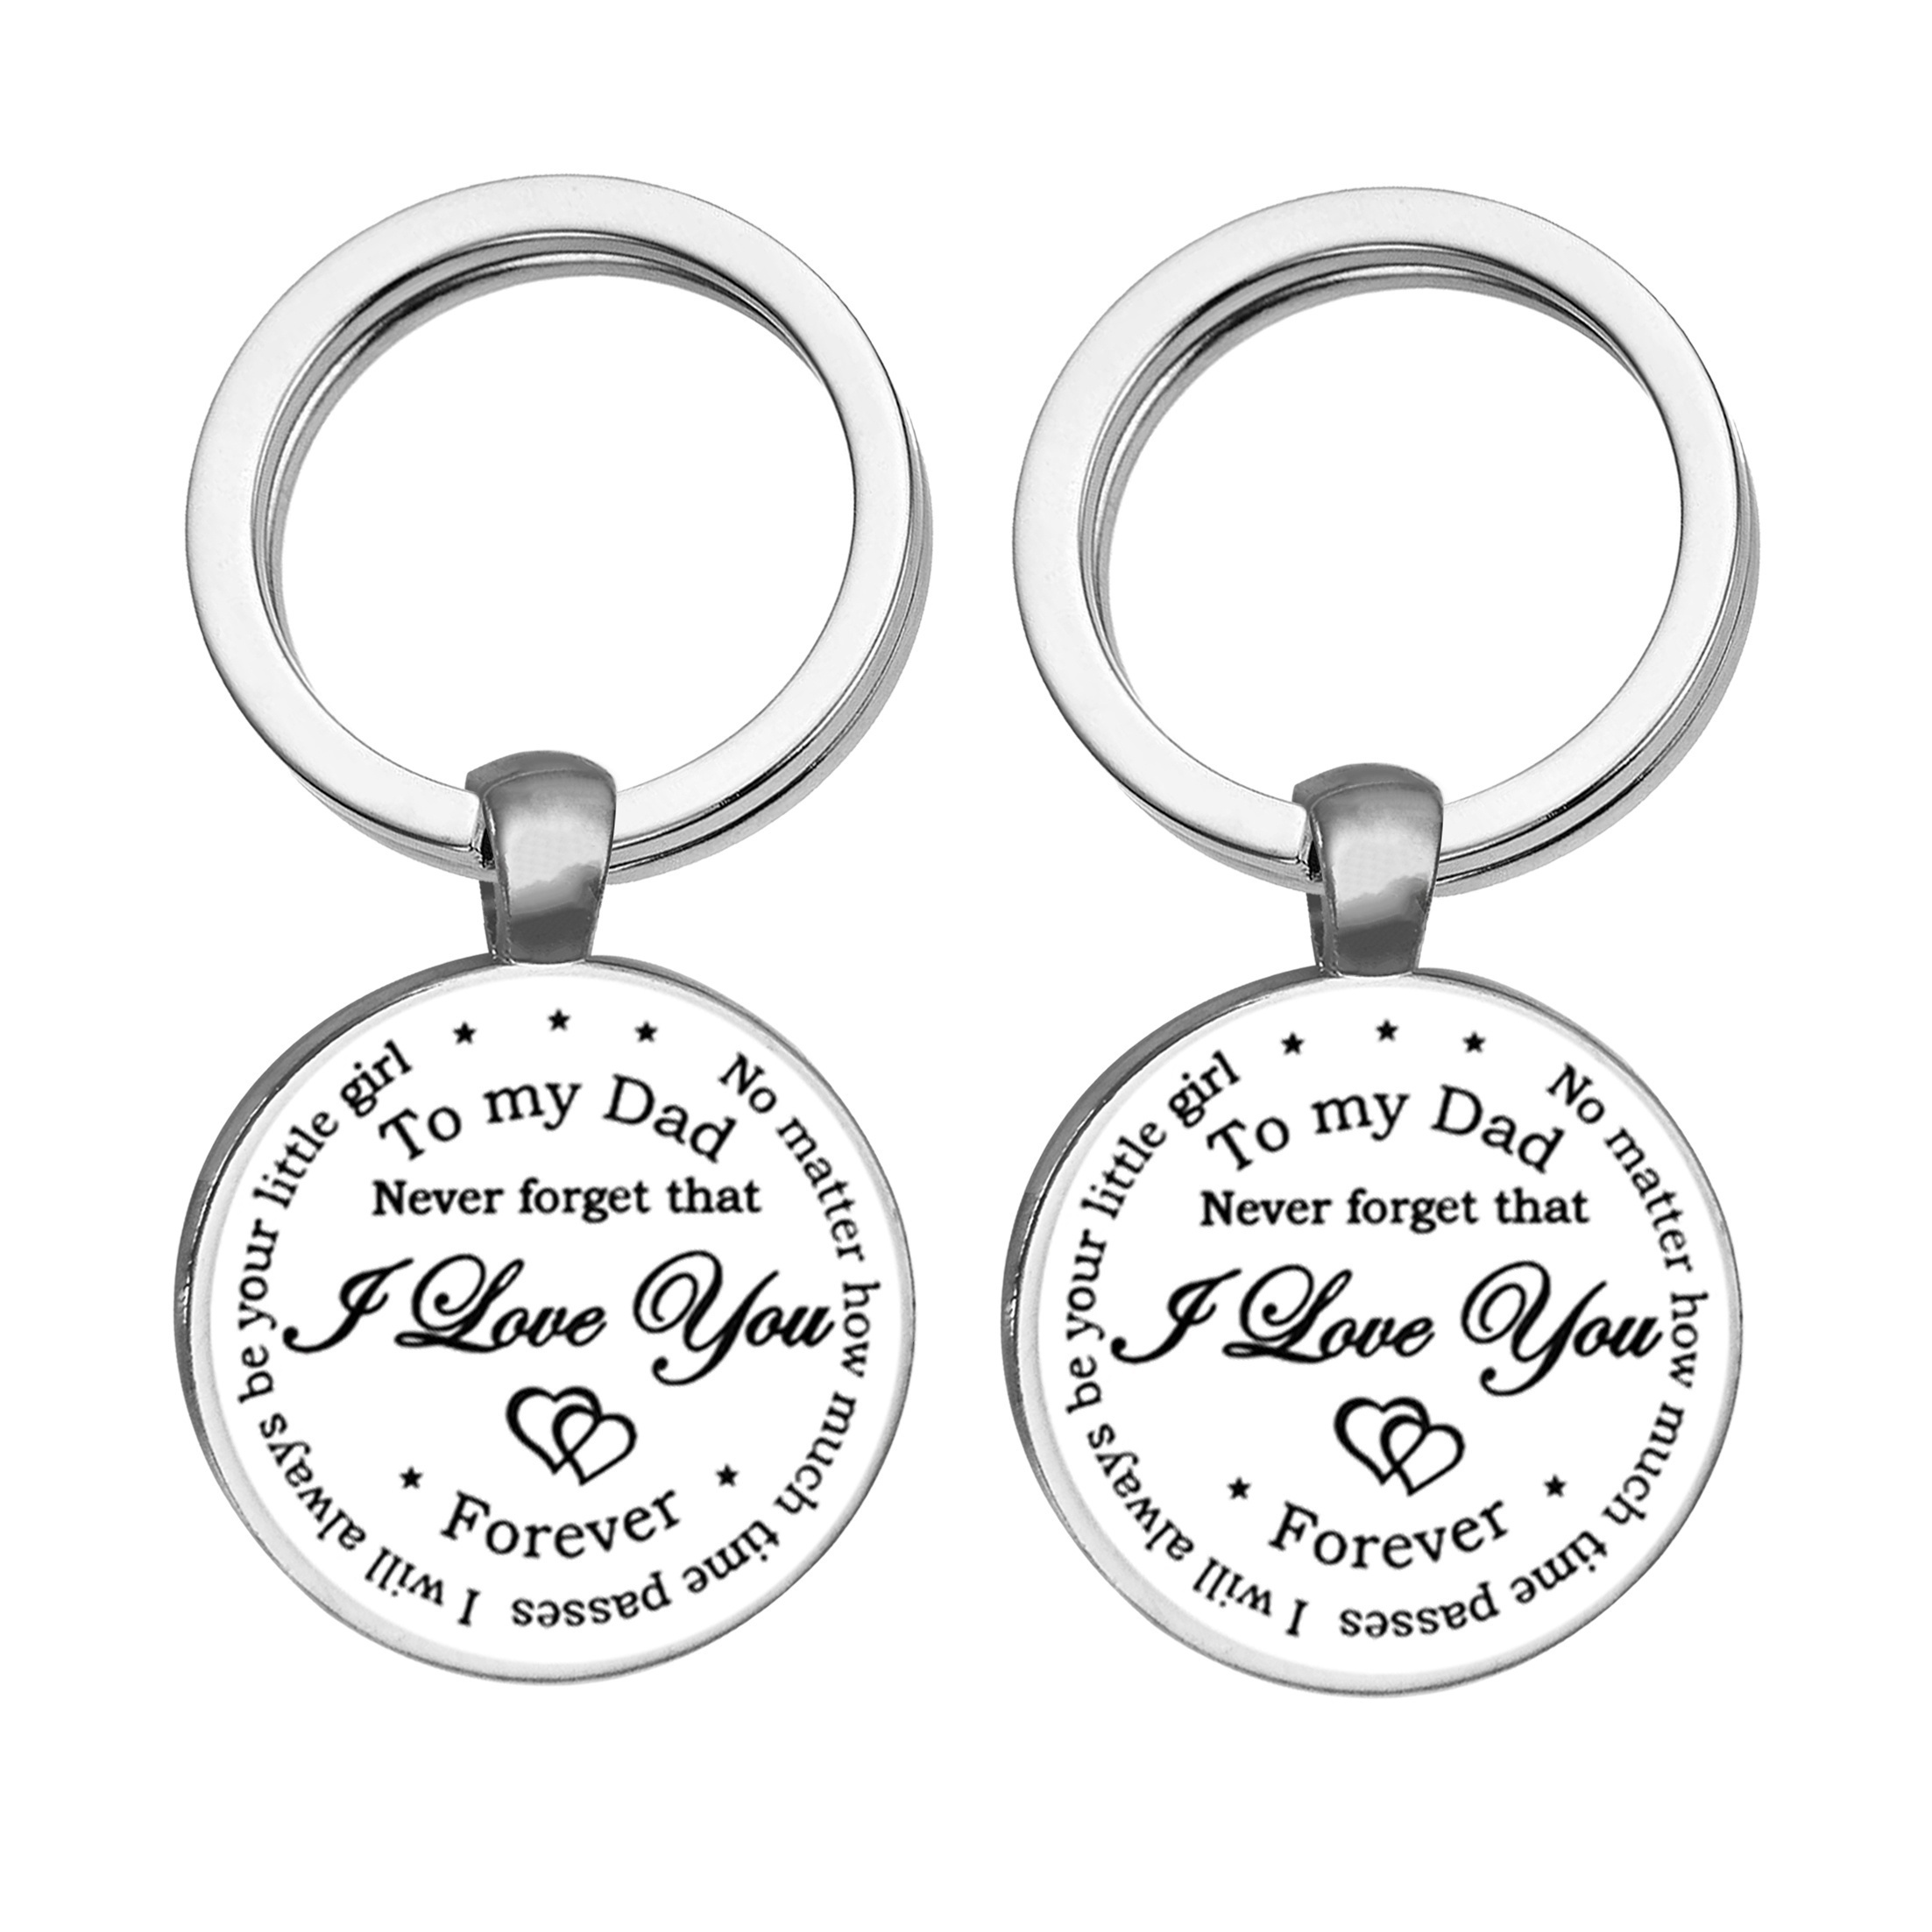 2019 To My Dad Never Forget That I Love You... Classic Minimalist New Round Keychain, Handmade Glass Key Ring Accessories, Birthday Gift for Dad, Car Keychain Accessories